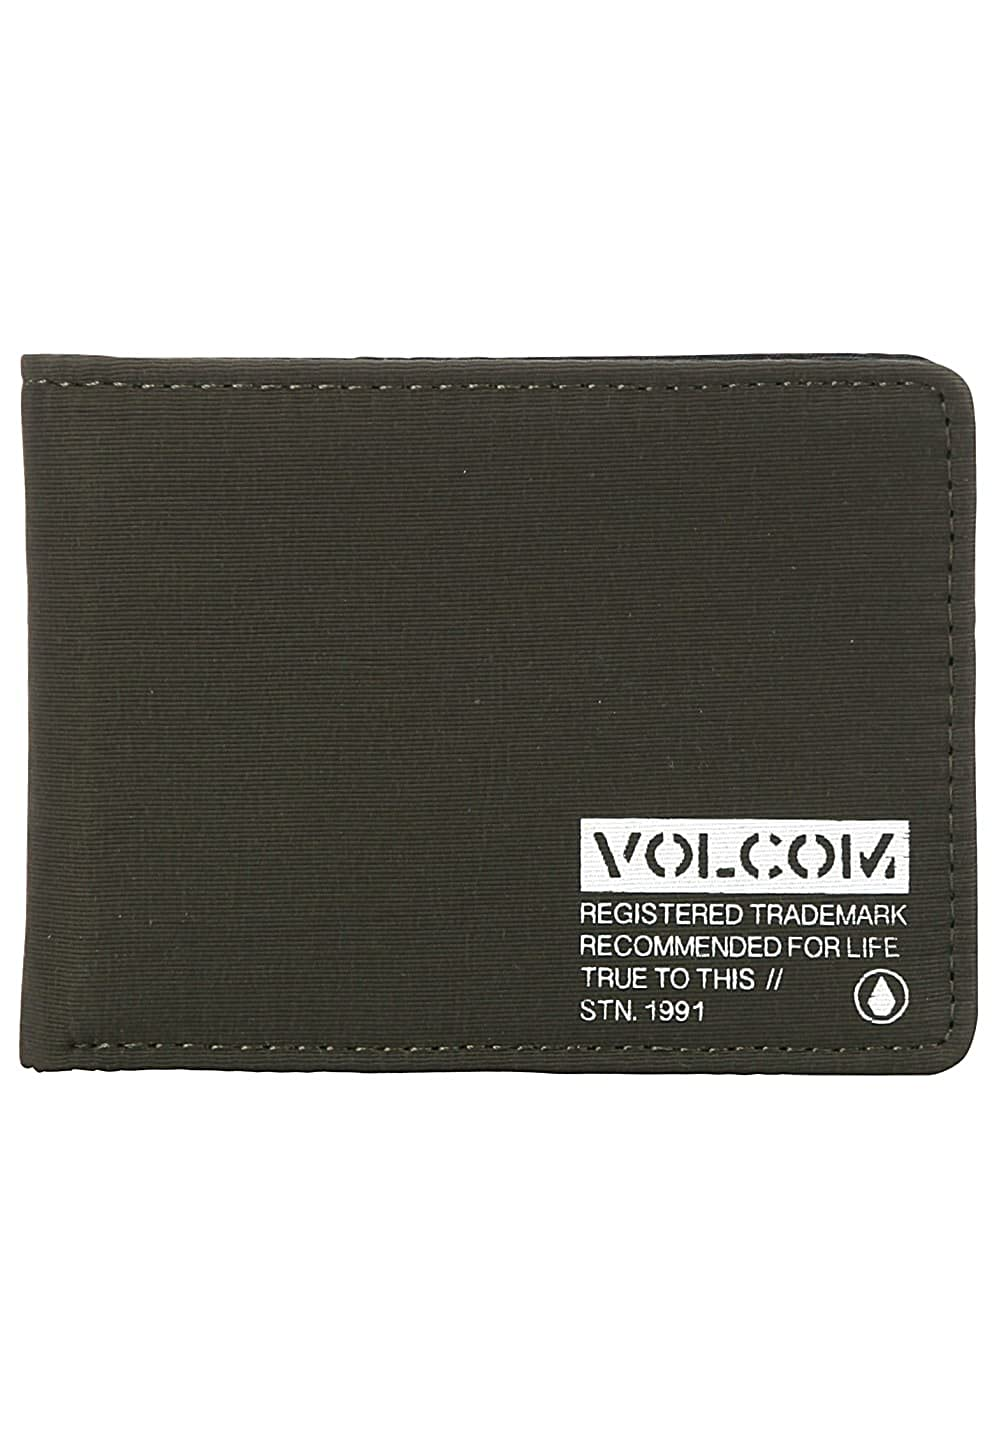 Volcom Men's Spark 3 Fold Wallet, Military, One Size fits All D6031853